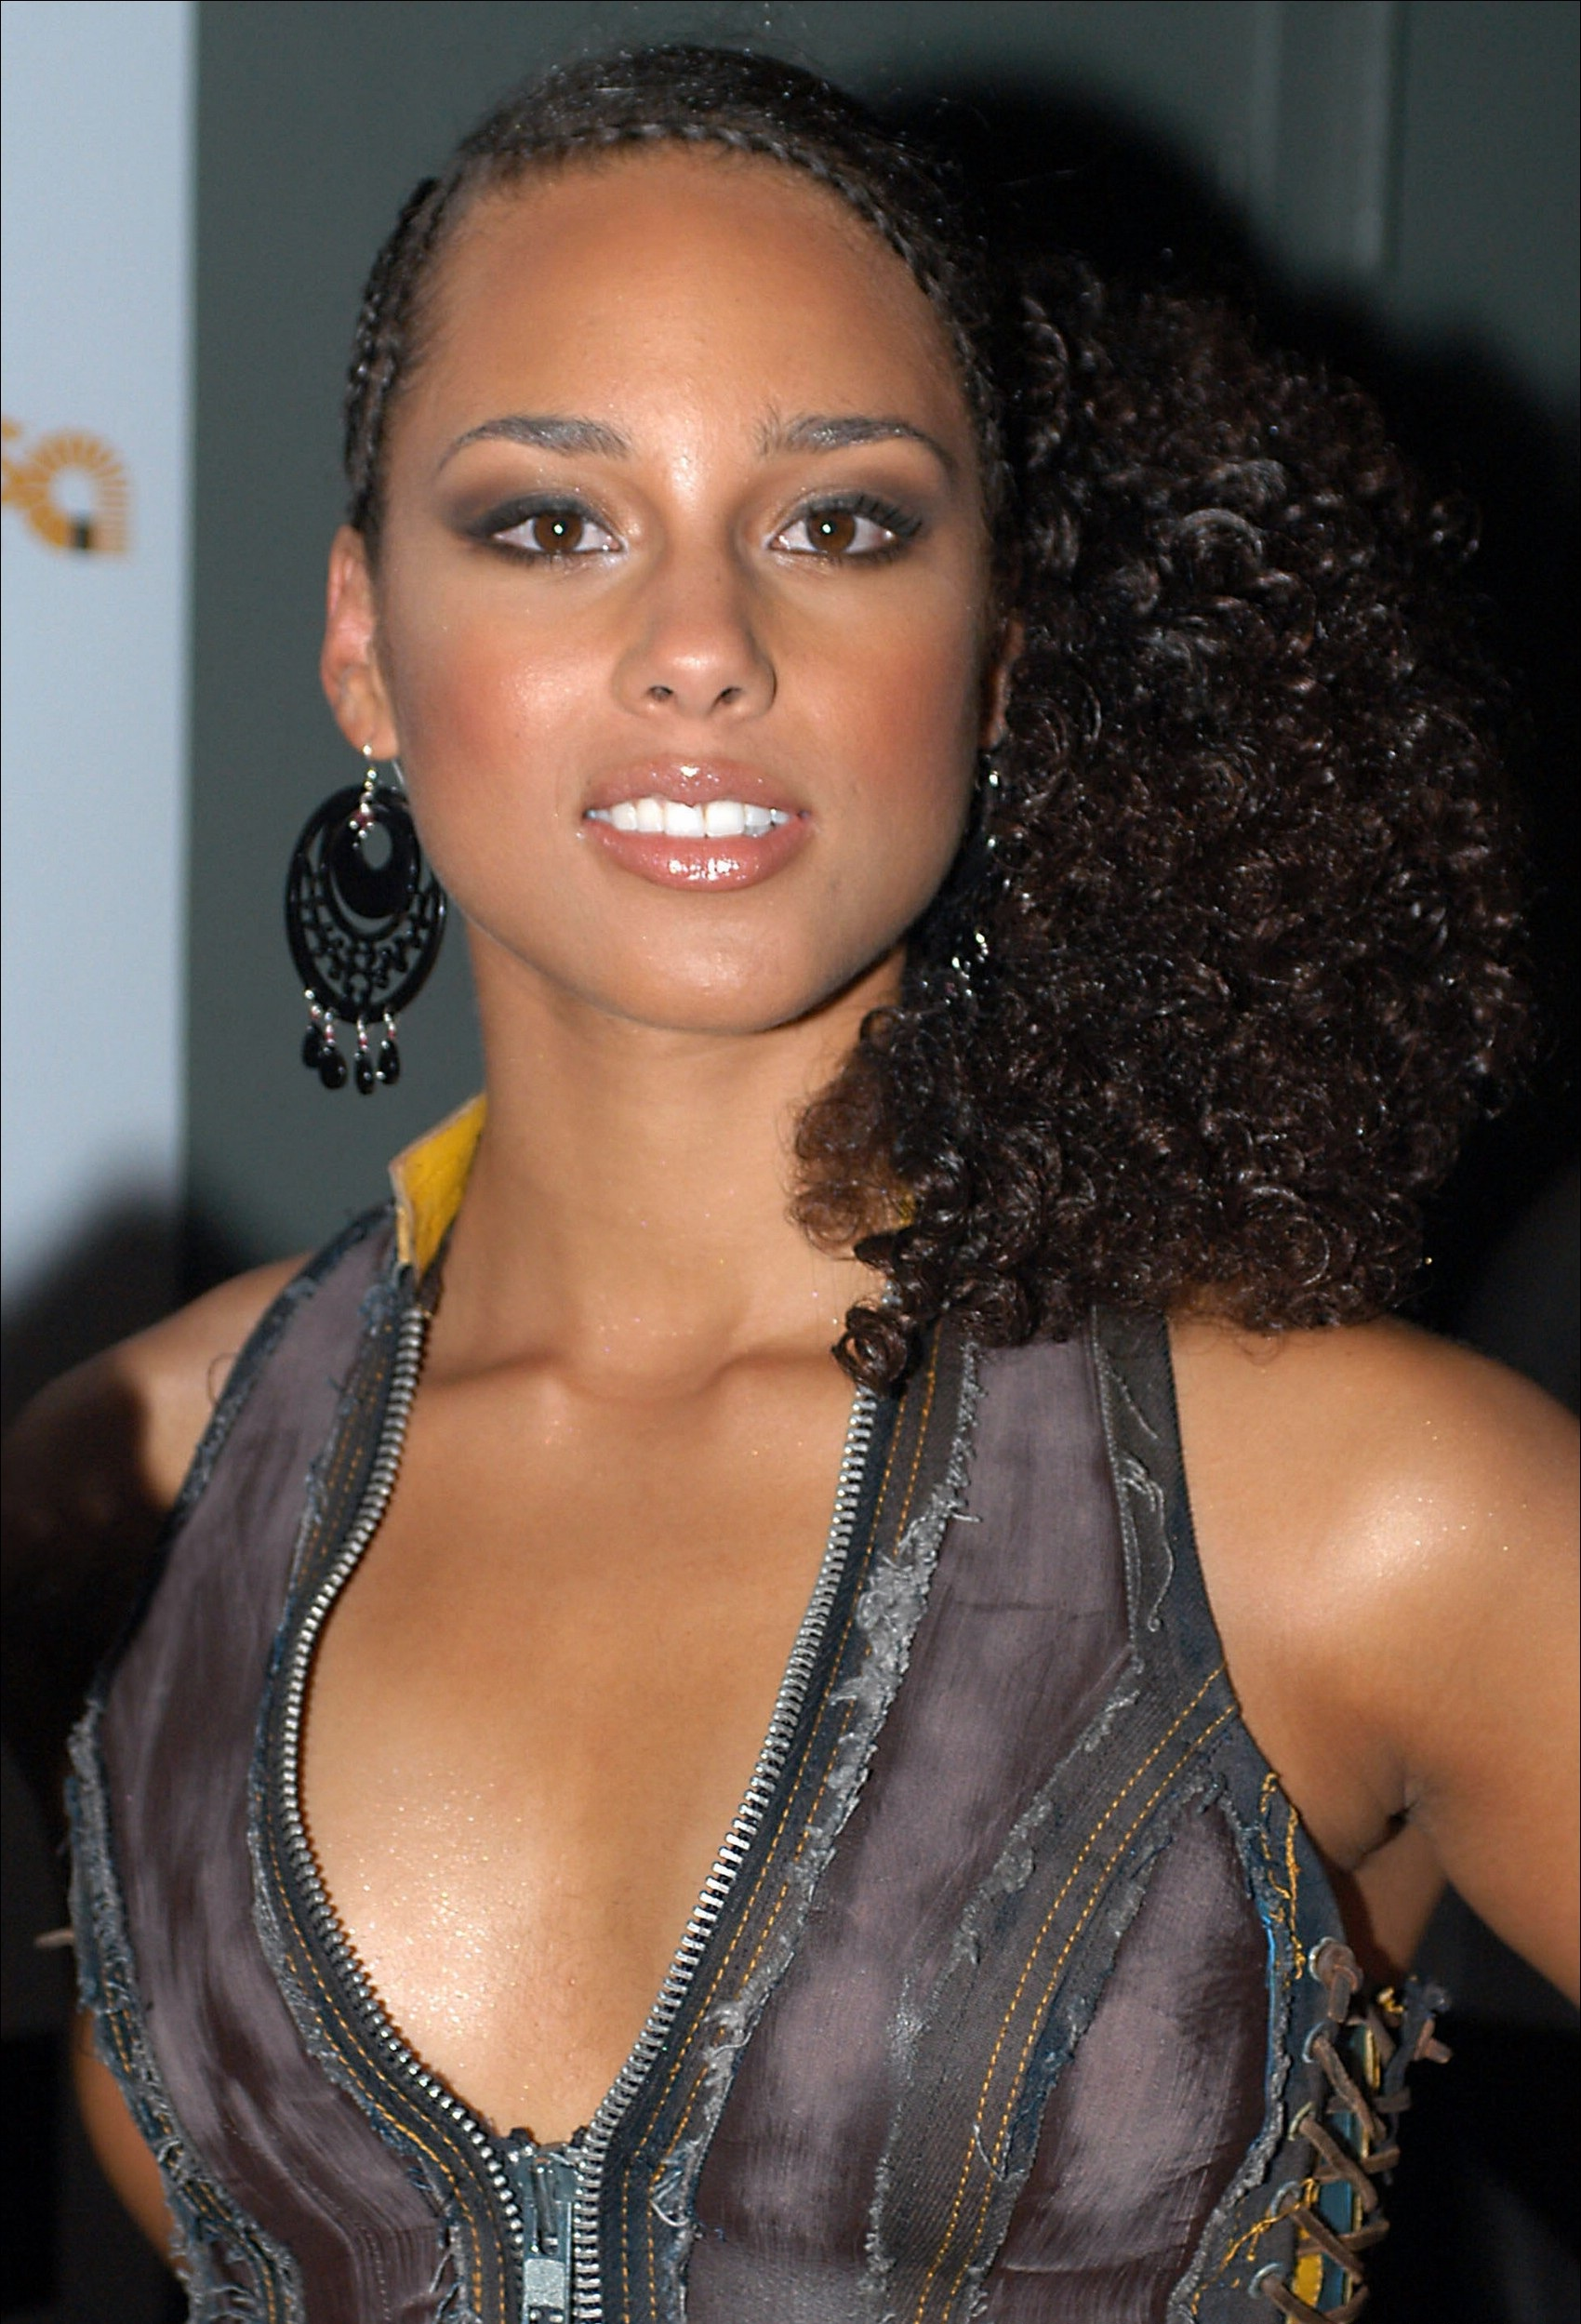 31 Alicia Keys Hot And Sexy Pictures – One of The Hottest ...